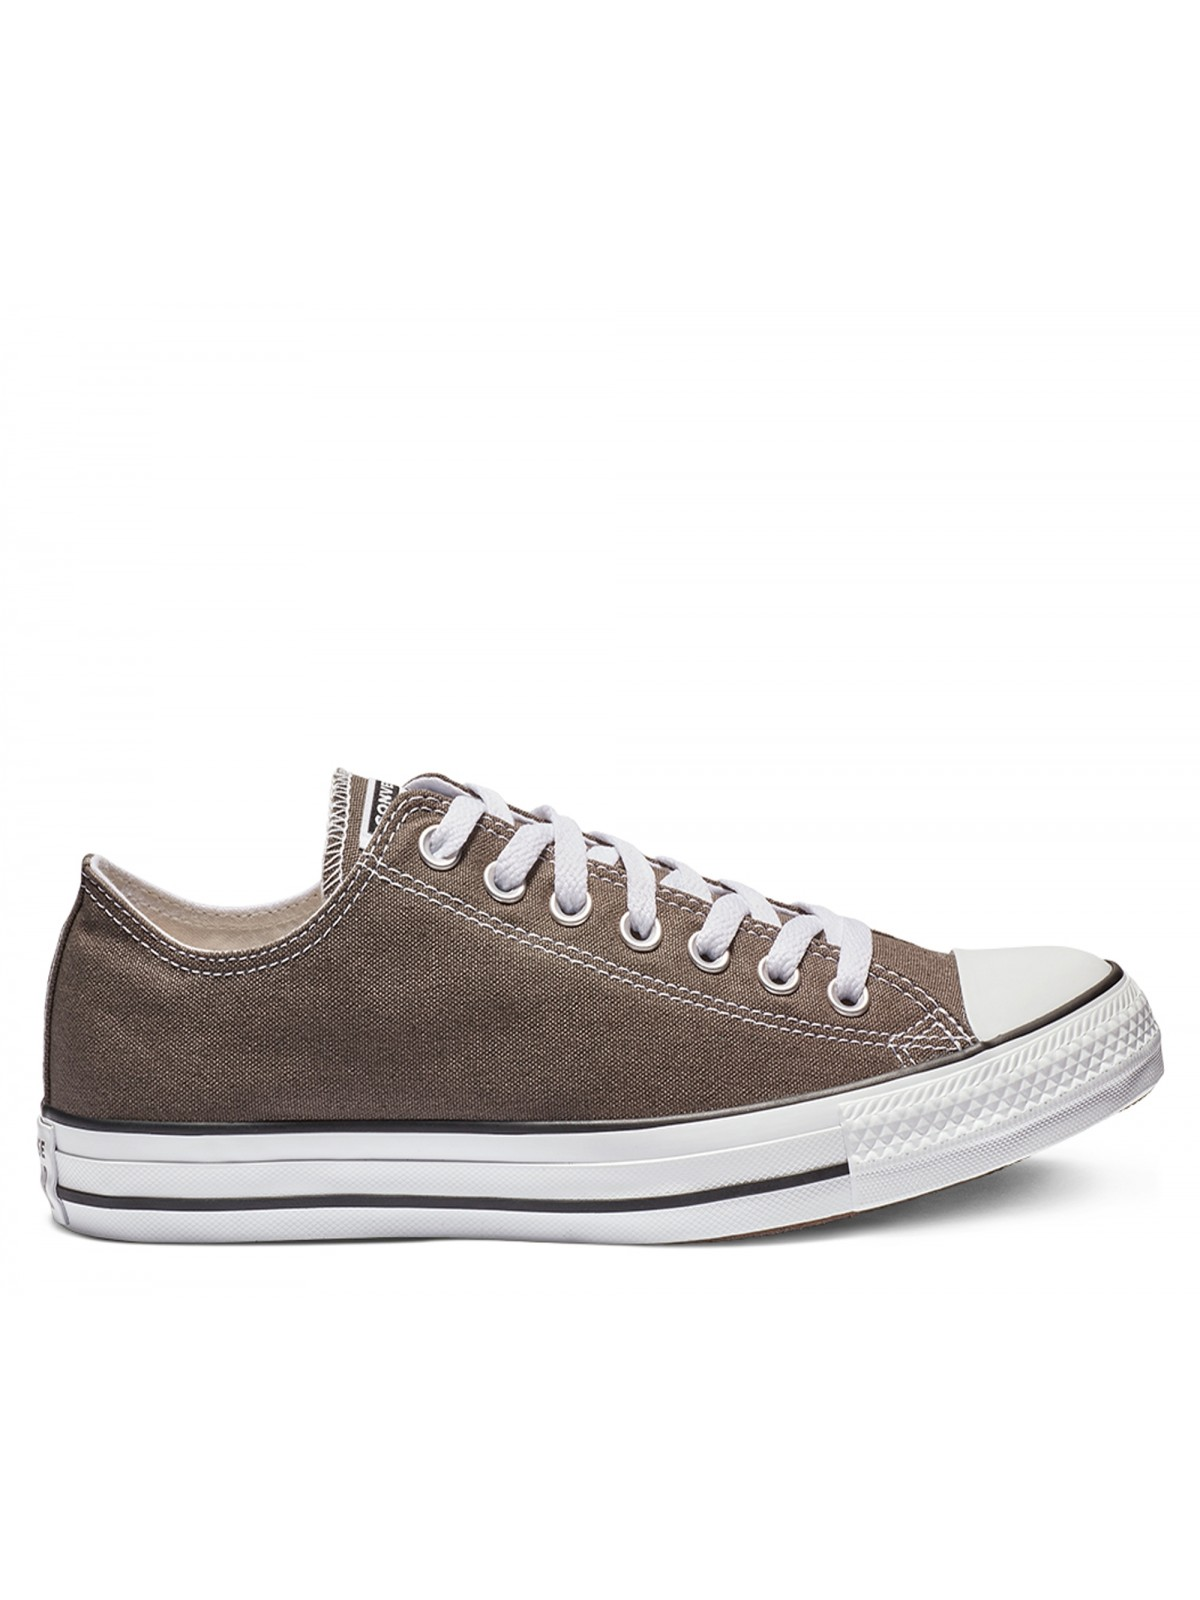 Converse Chuck Taylor all star toile basse anthracite